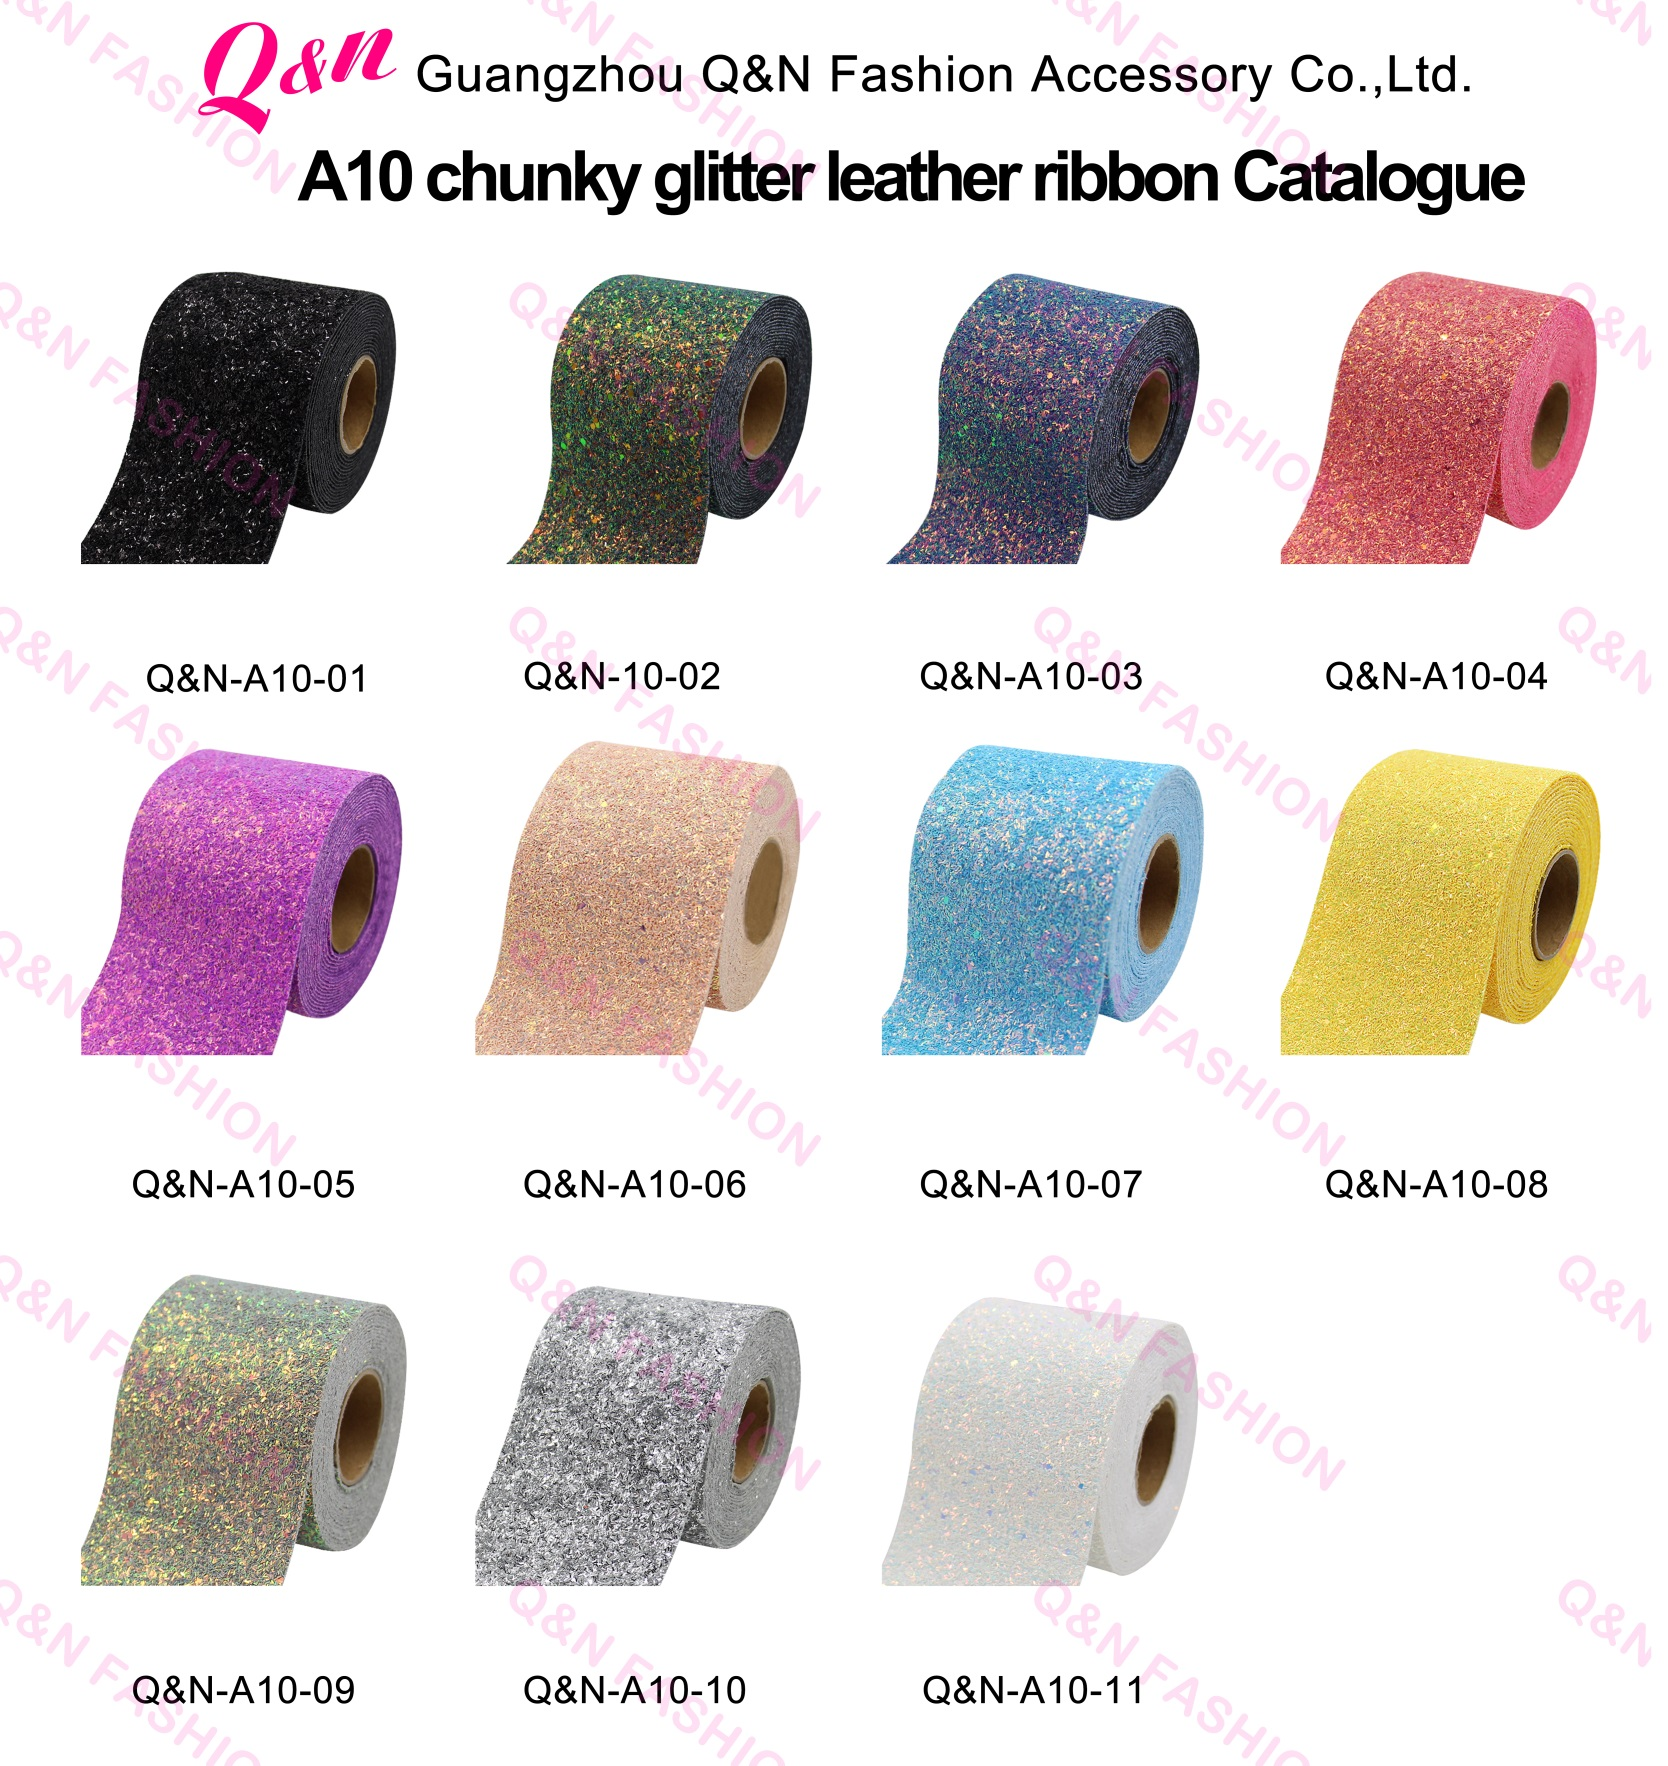 Wholesale custom gold printed glitter leather ribbon for gift packing